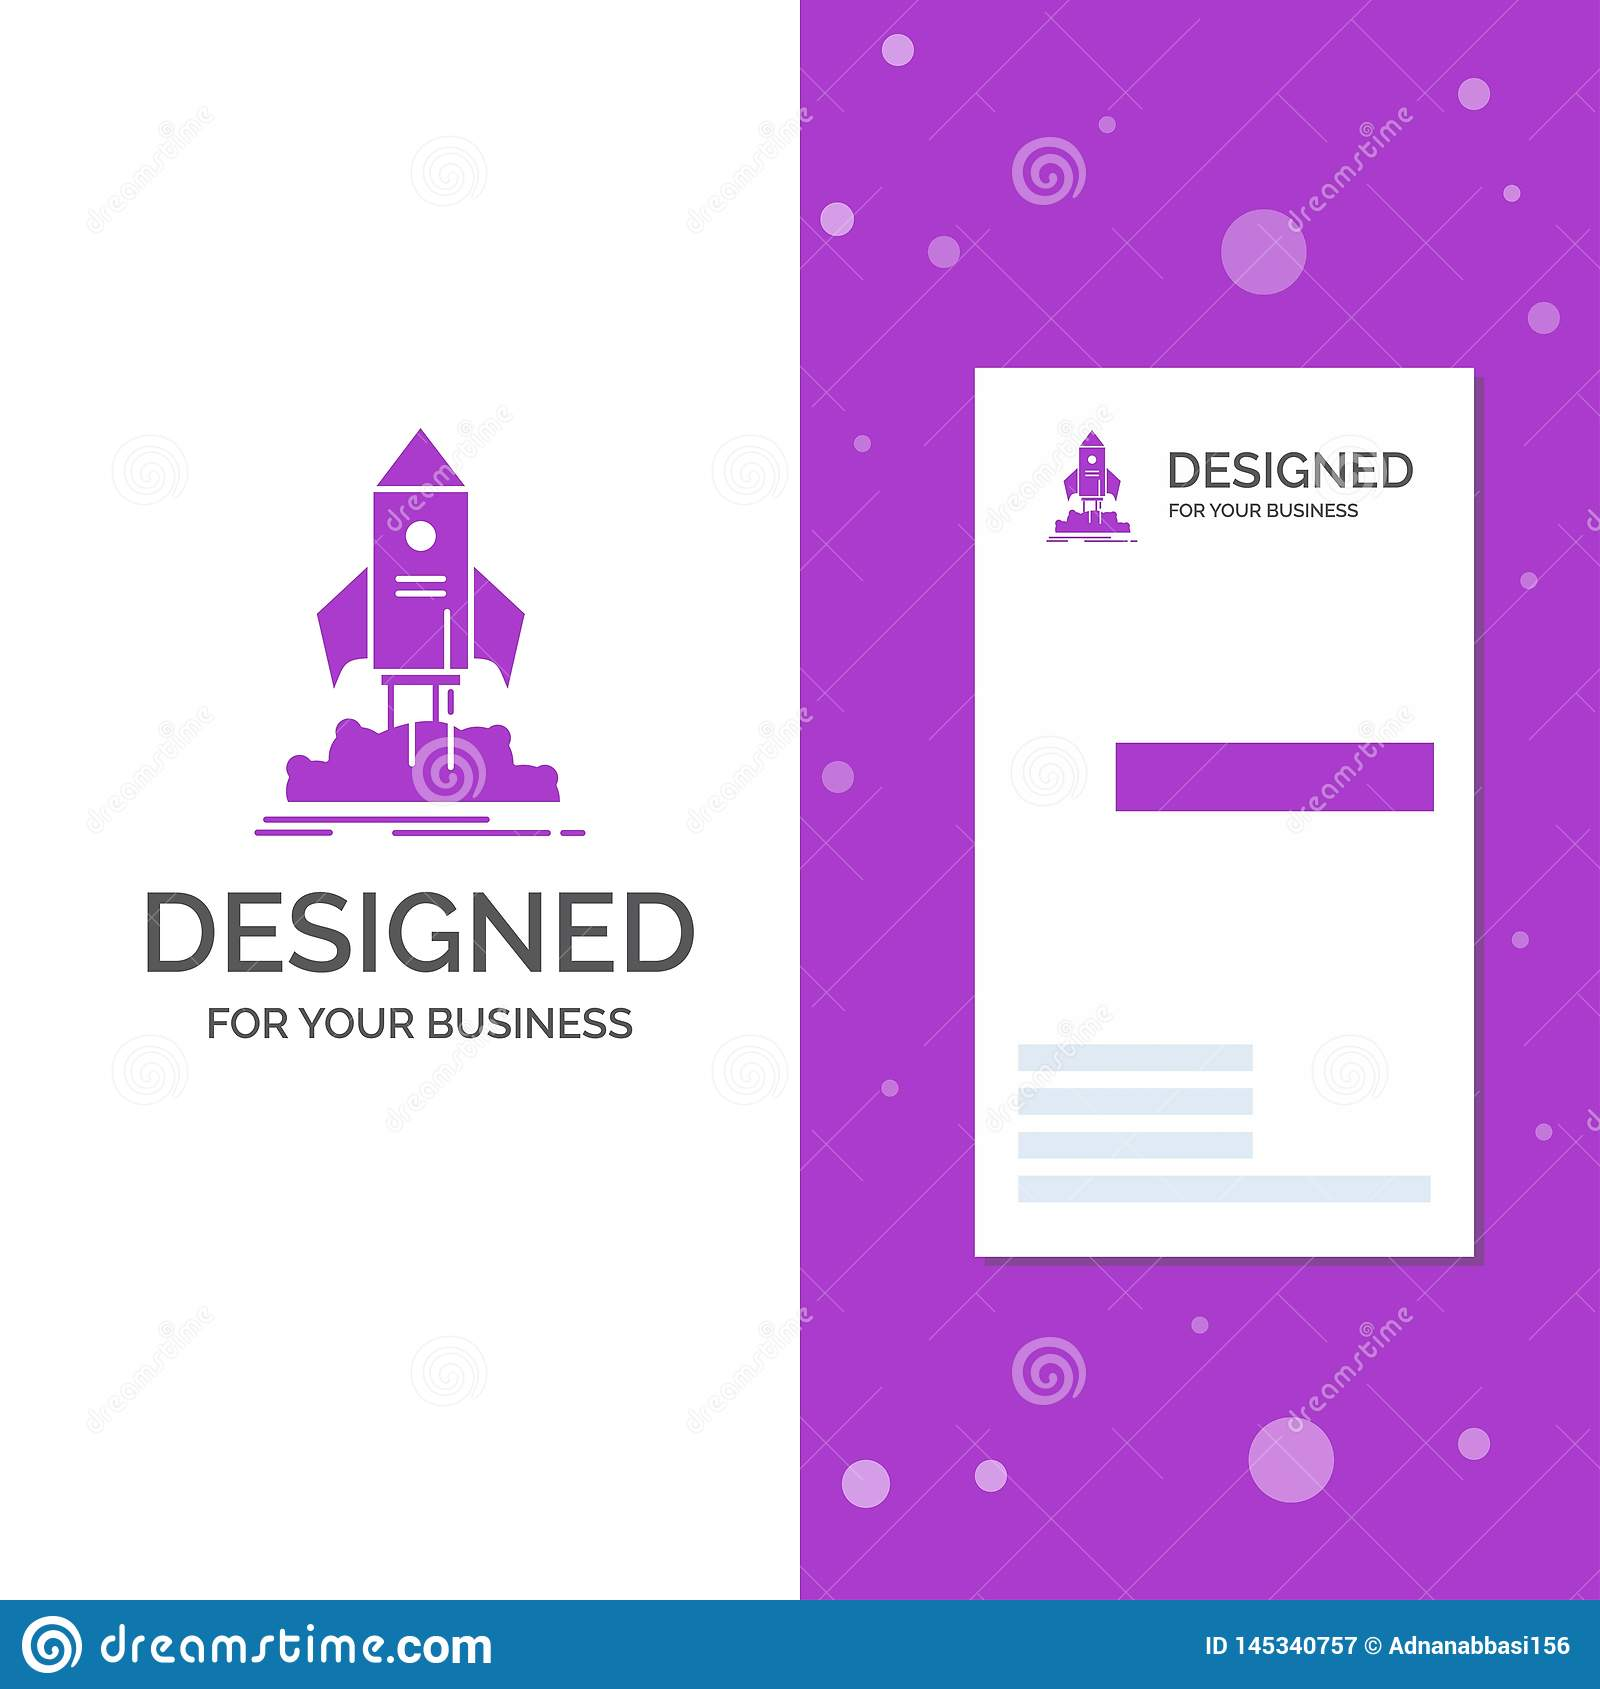 Business Logo for launch, startup, ship, shuttle, mission. Vertical Purple Business / Visiting Card template. Creative background